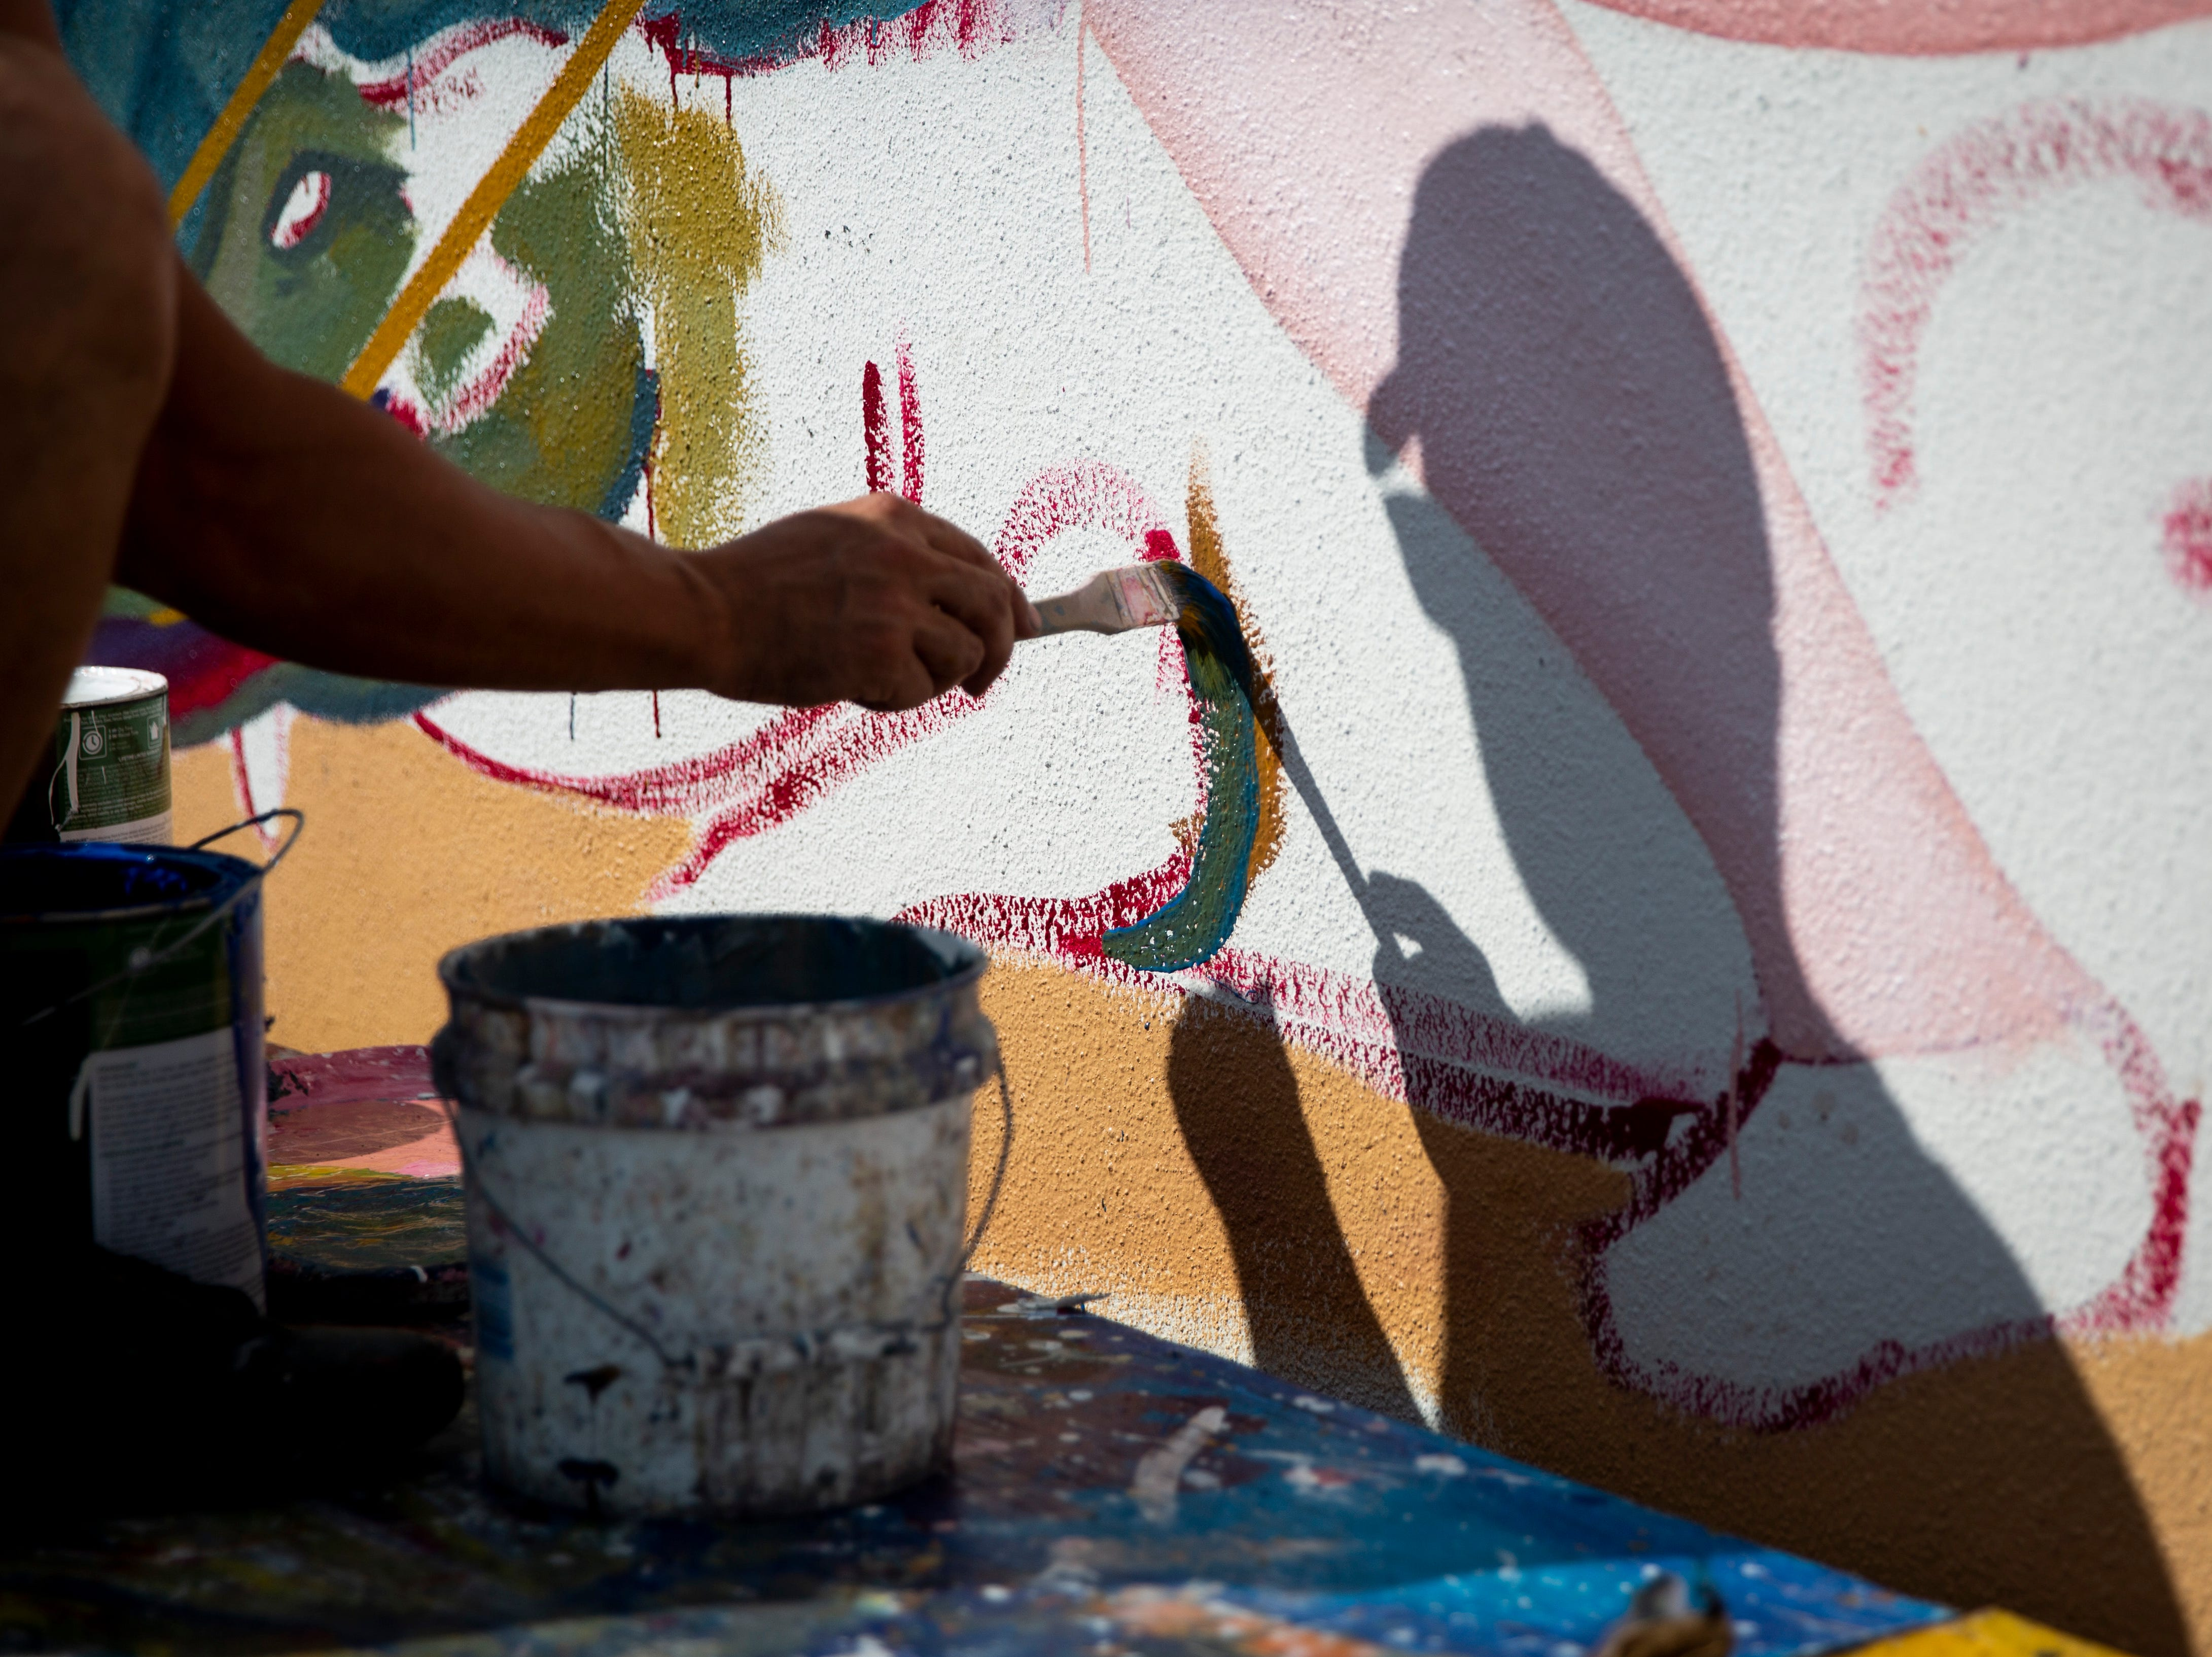 Naples artist Juan Diaz works on a mural on Friday, Nov. 23, 2018, at U.S. 41 South and First Avenue South in Naples. Diaz has been working on the mural for three weeks and plans to have it completed by Saturday.